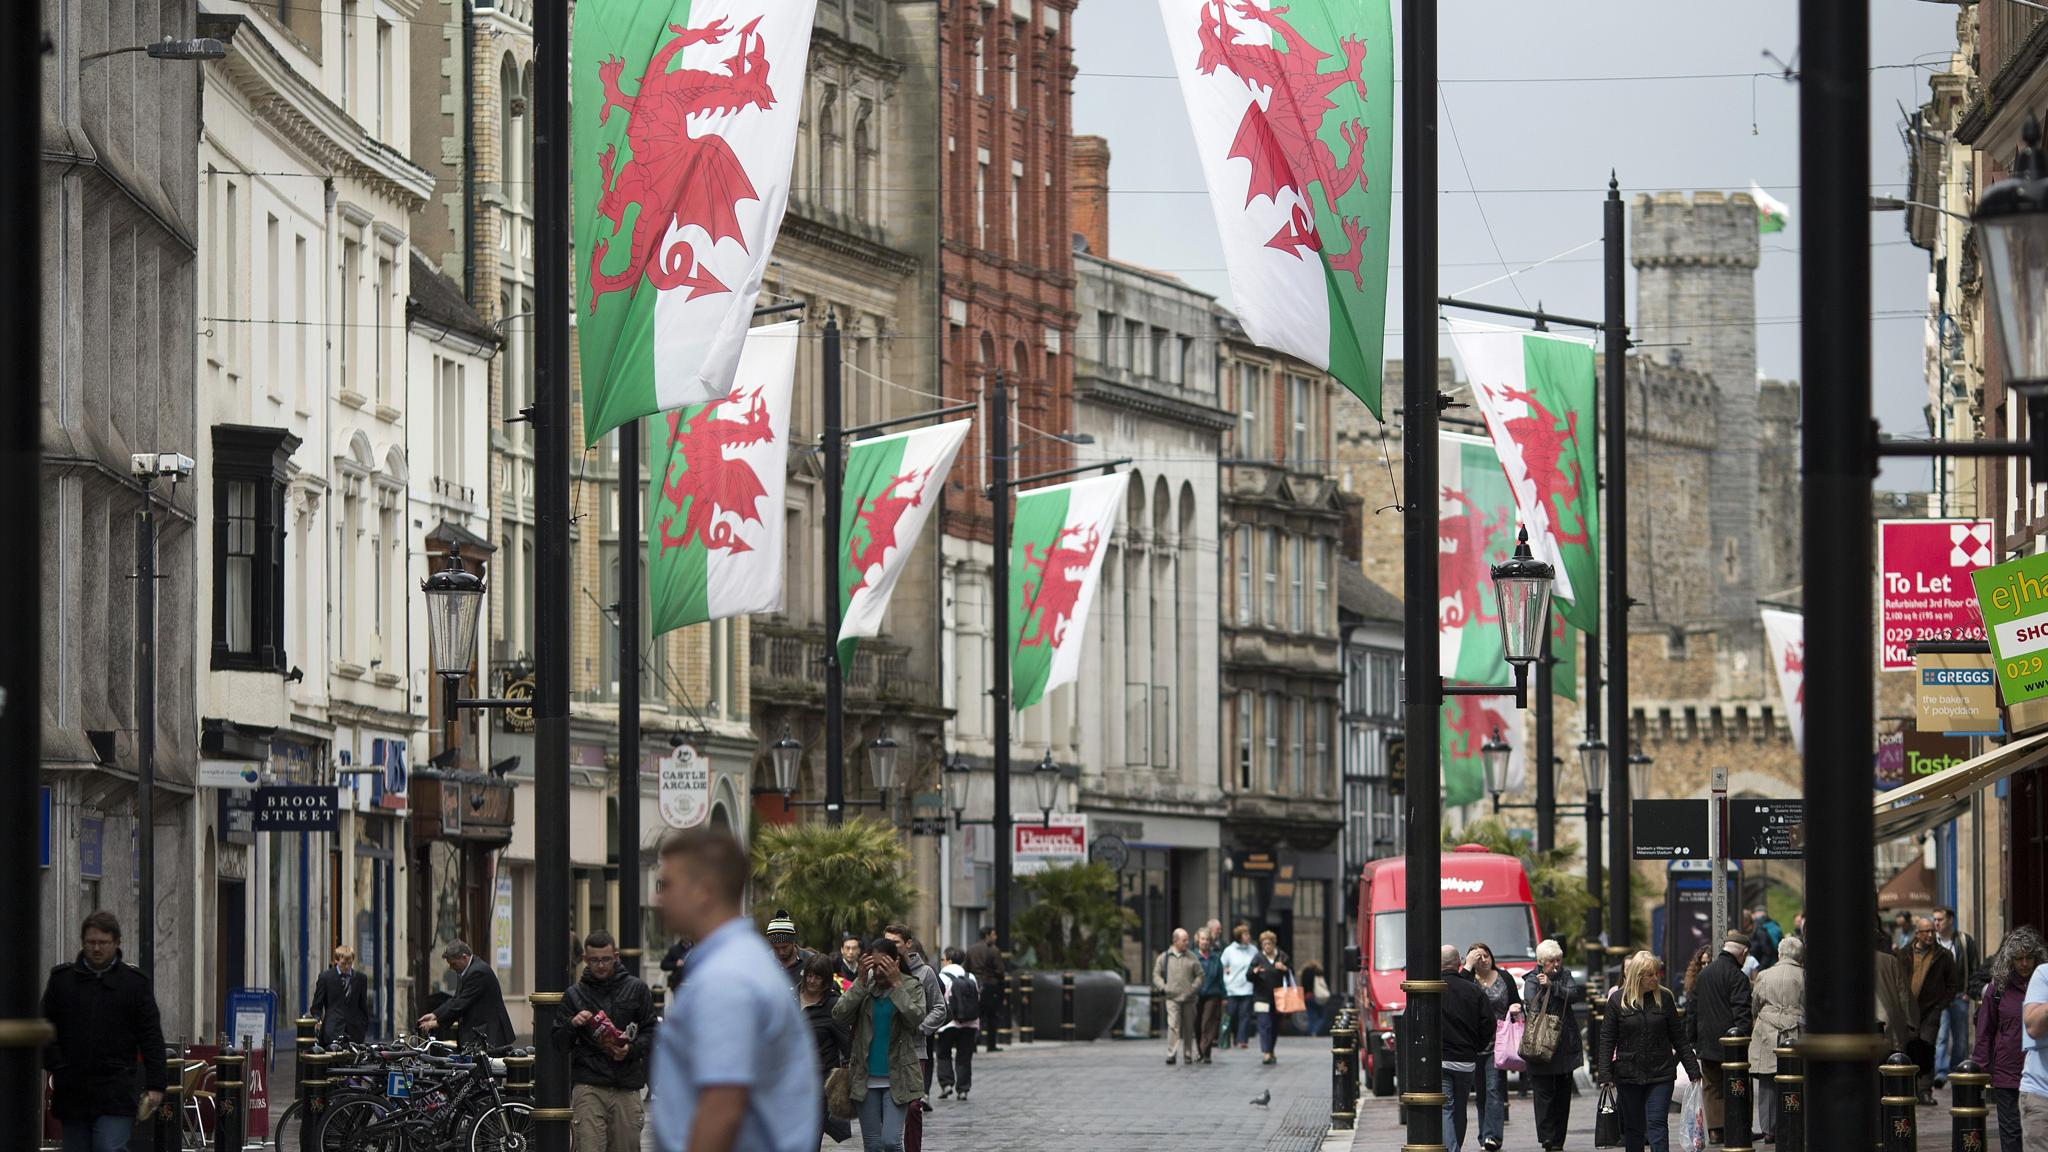 Wales fears diminished voice after Scottish referendum